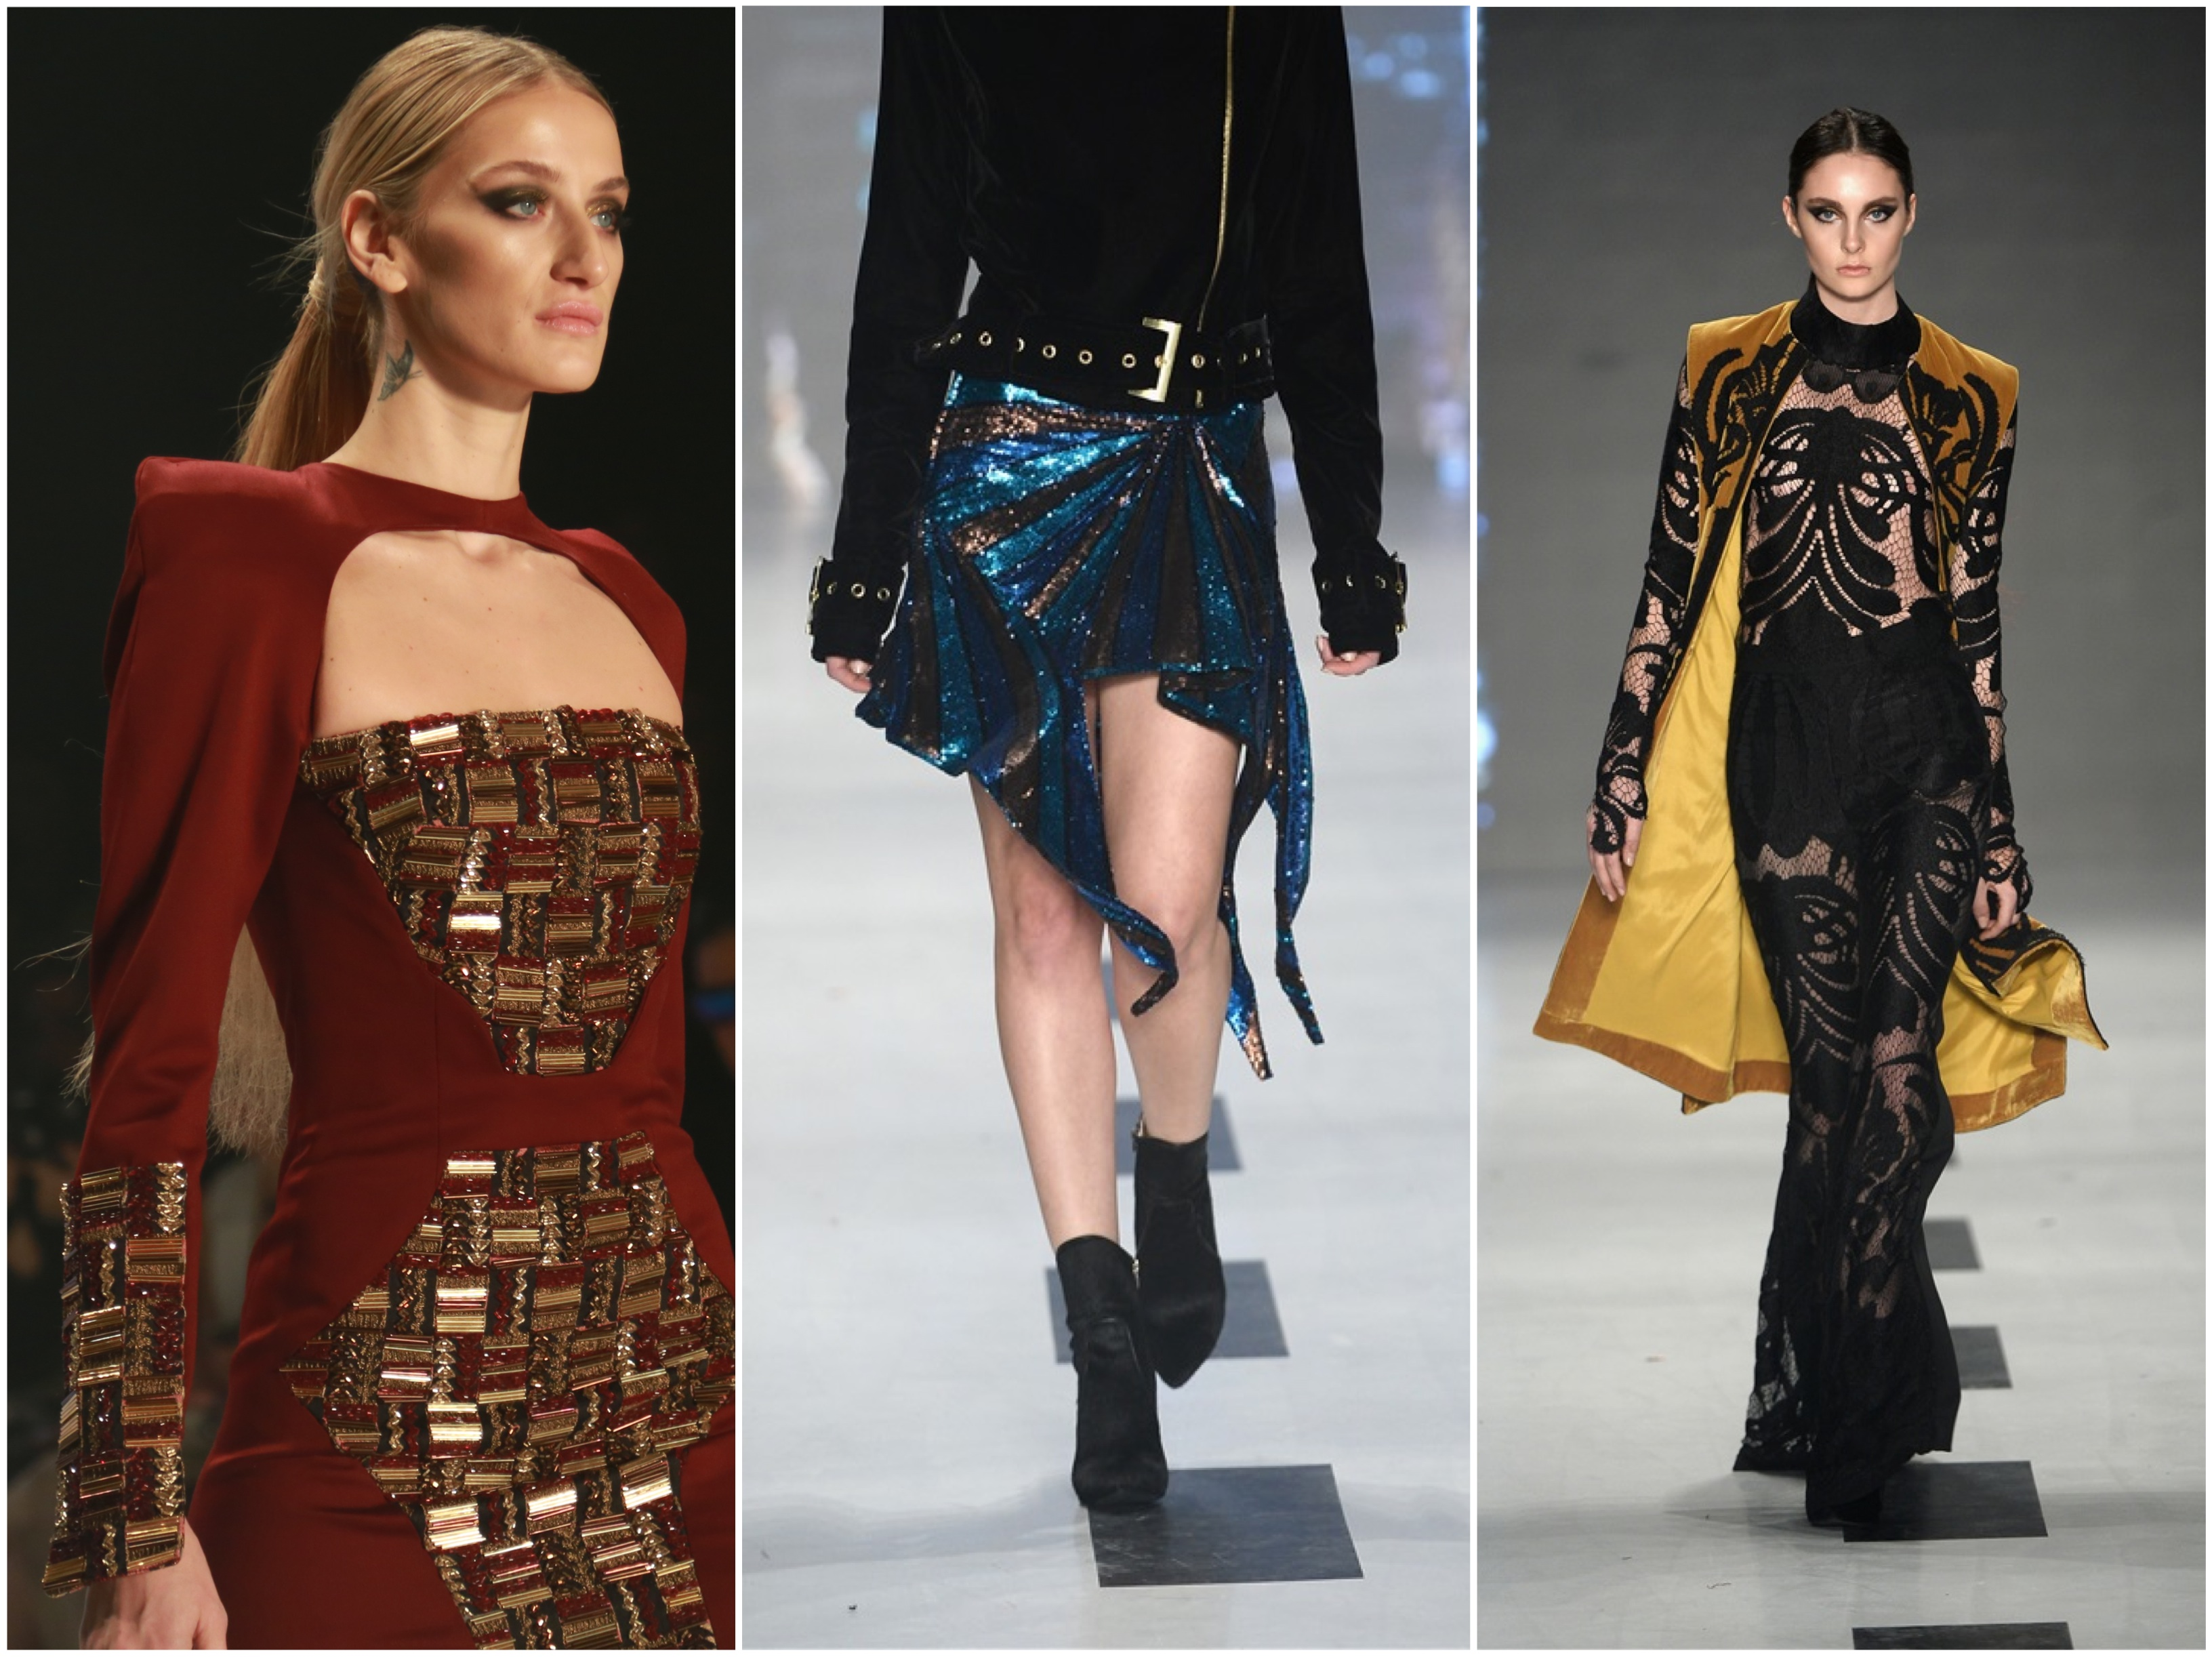 raisa vanessa, mbfwi, mercedes-benz fashion week istanbul,